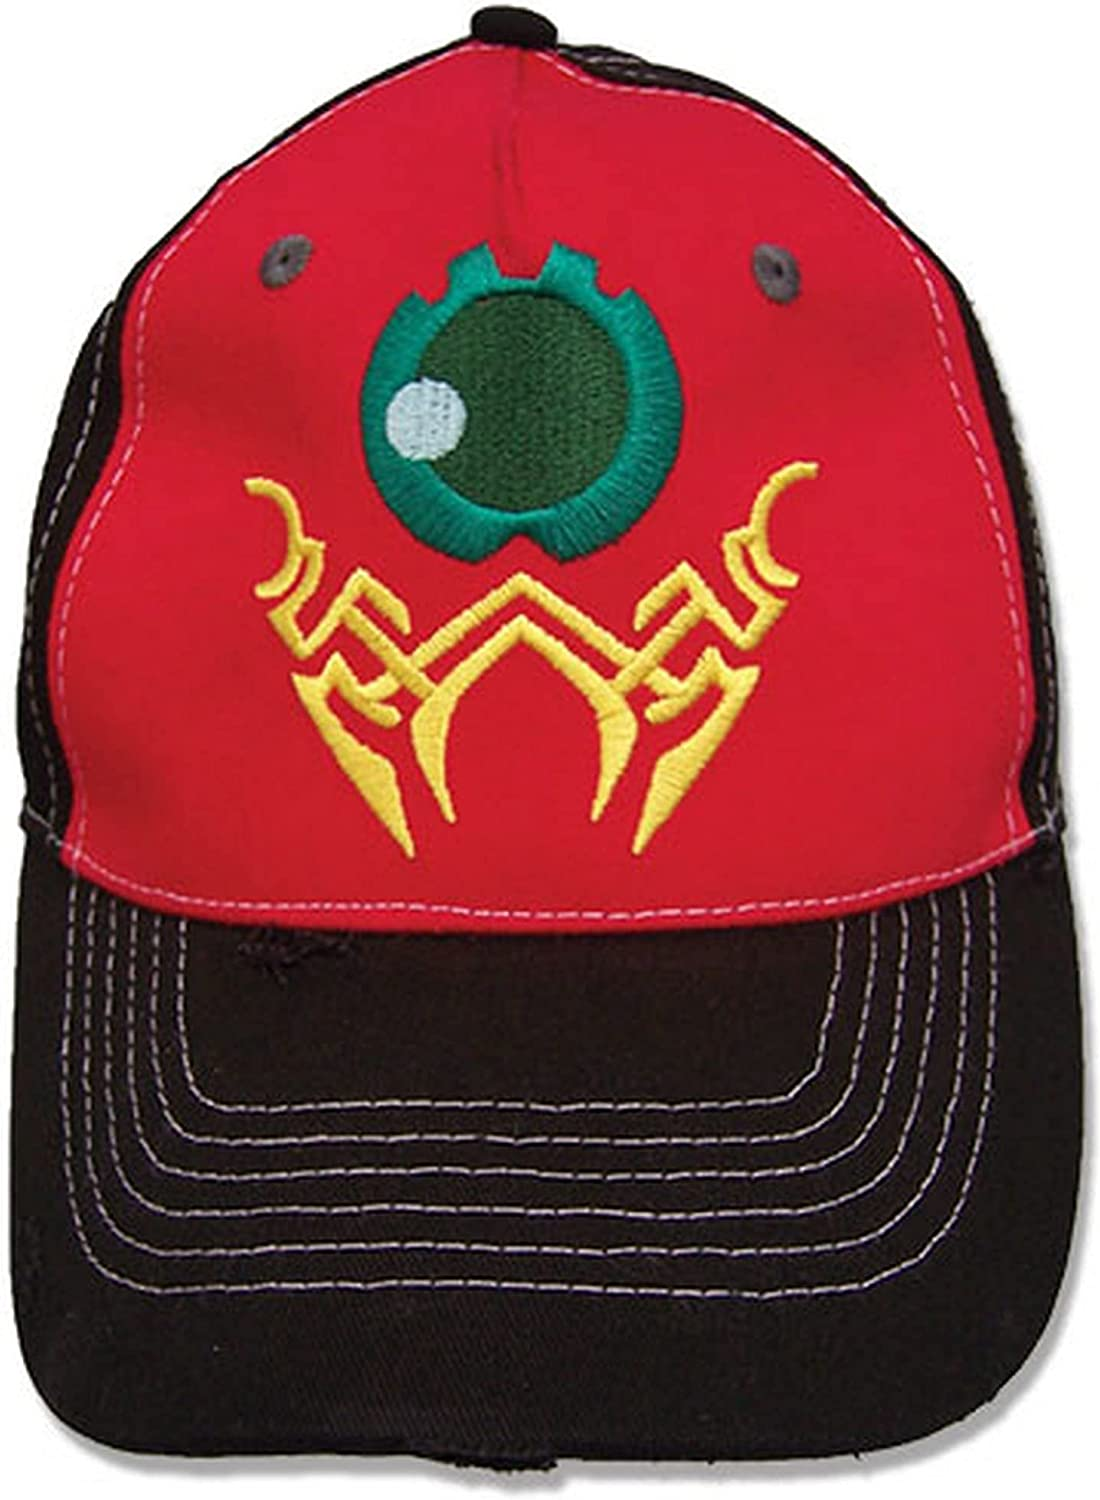 Great Eastern Entertainment High School DxD Issei Gear Cap Multi-colored, 8